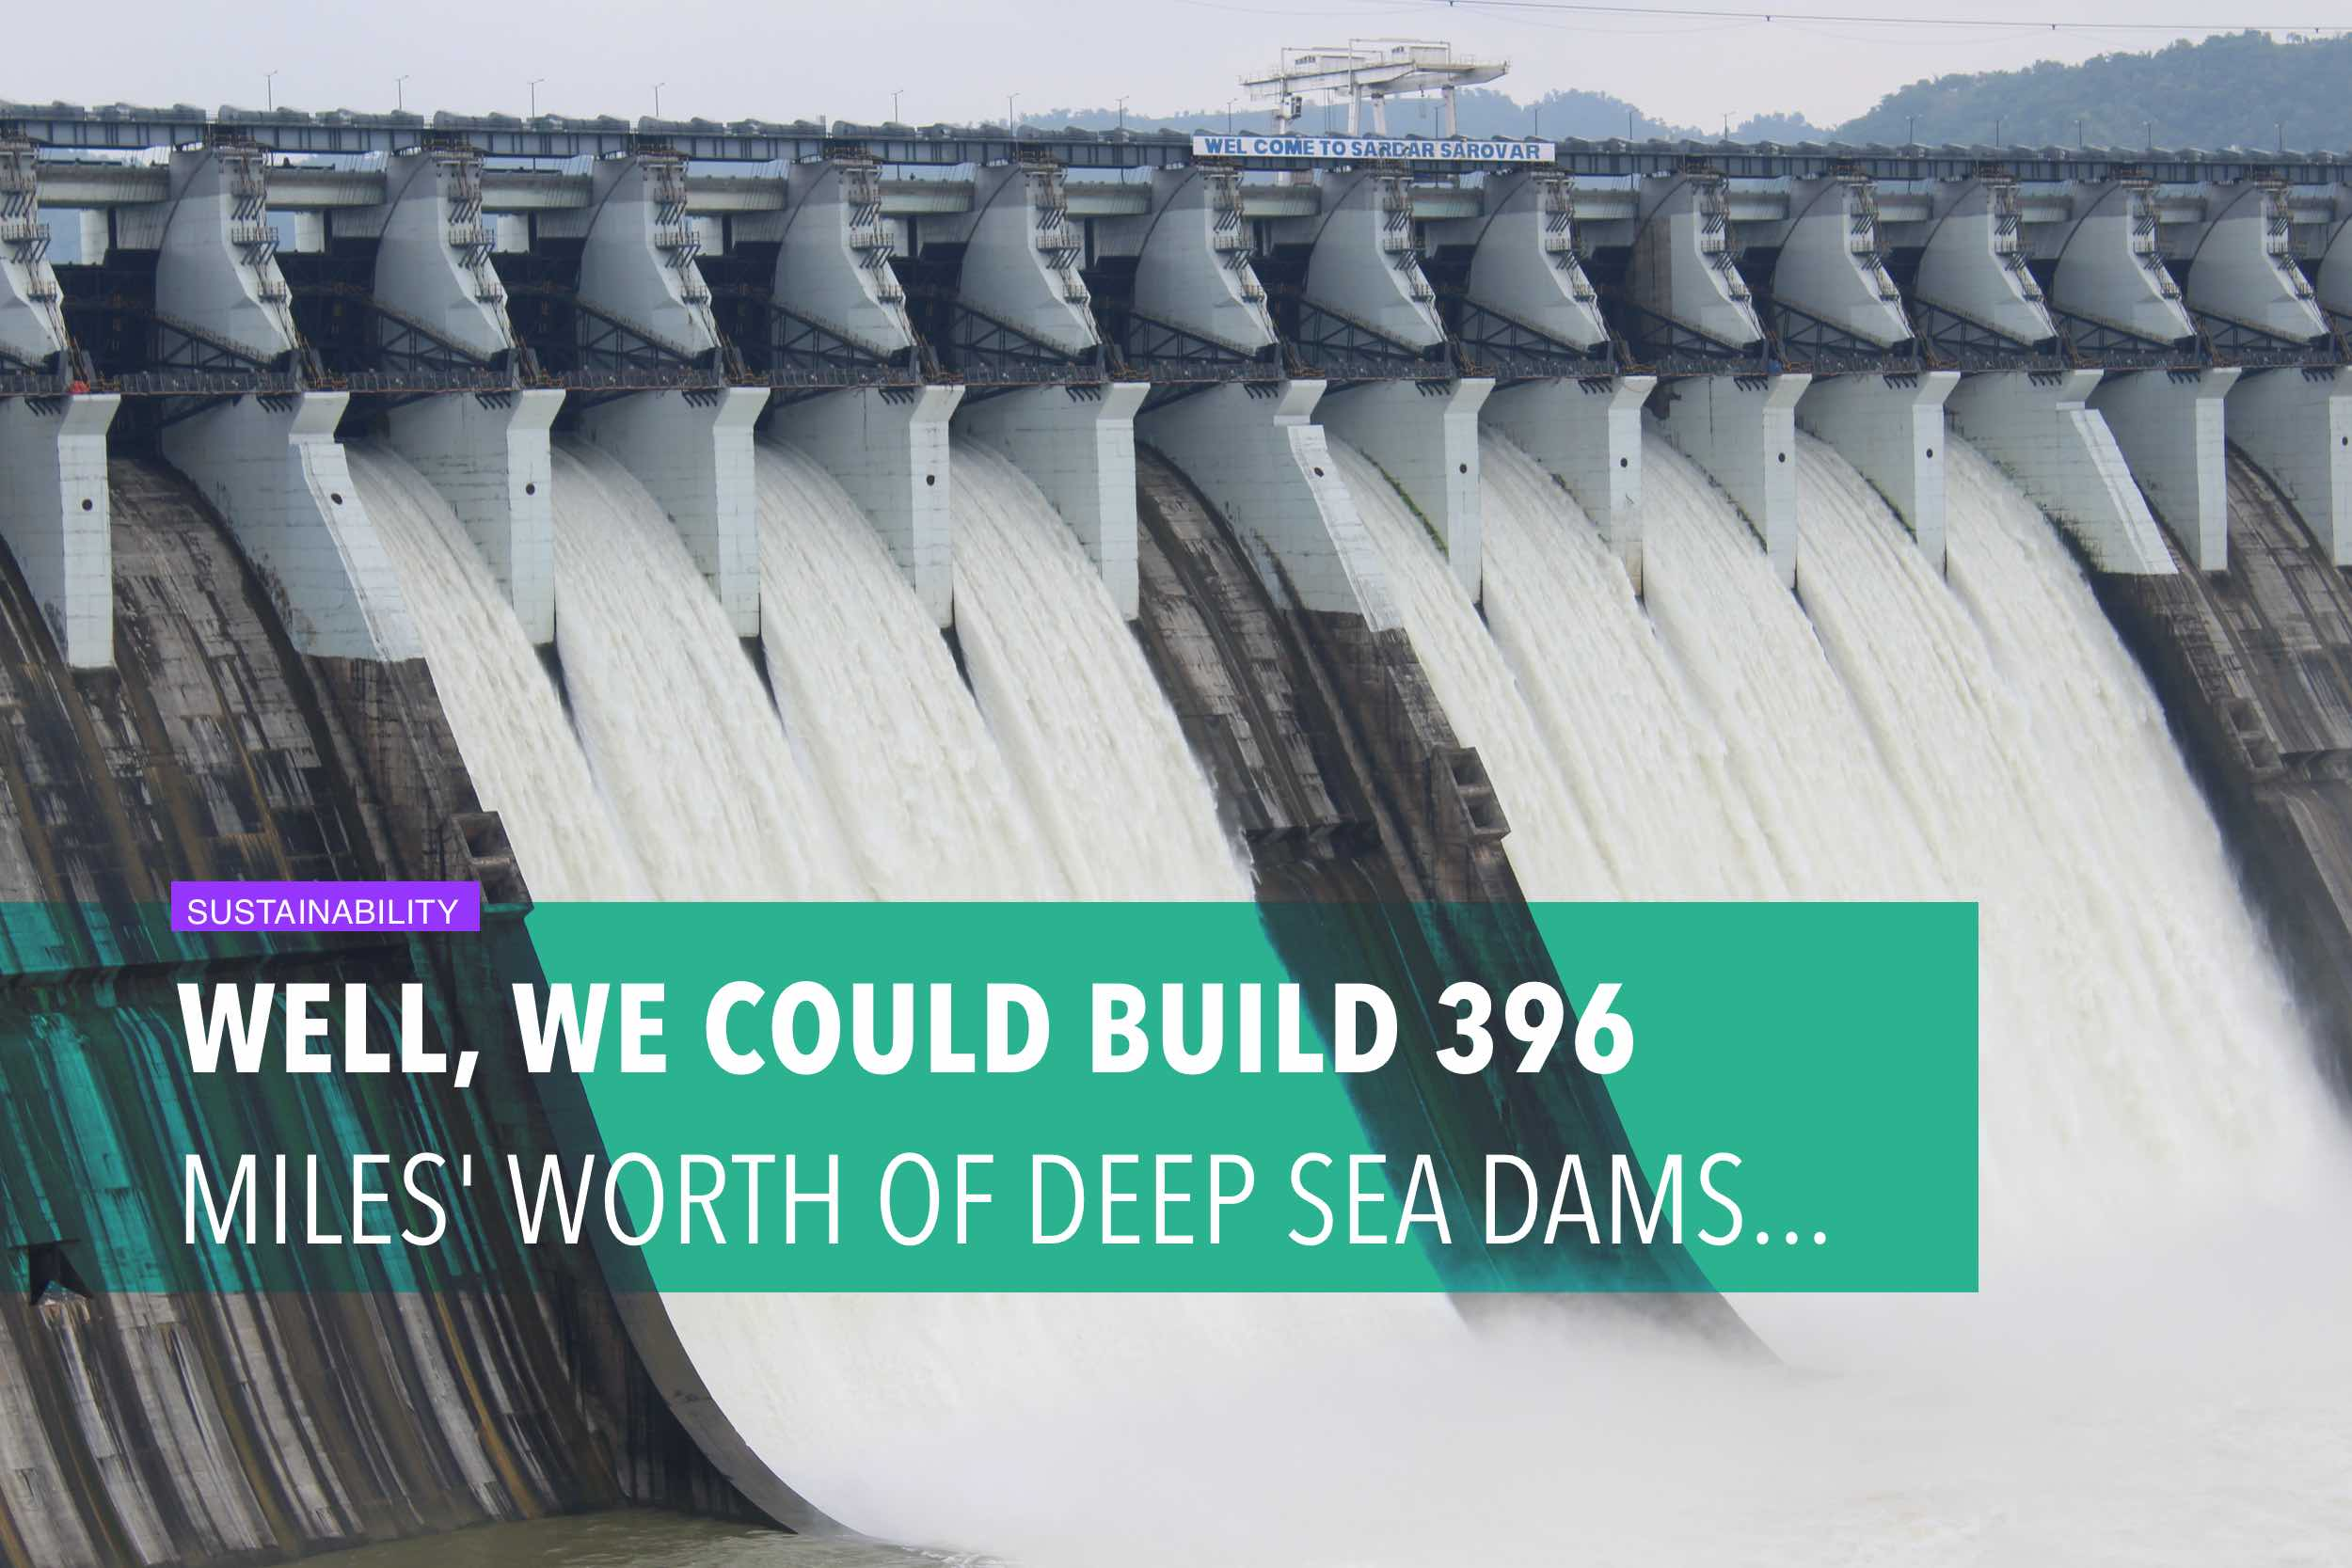 Well, we could build 396 miles' worth of deep sea dams...